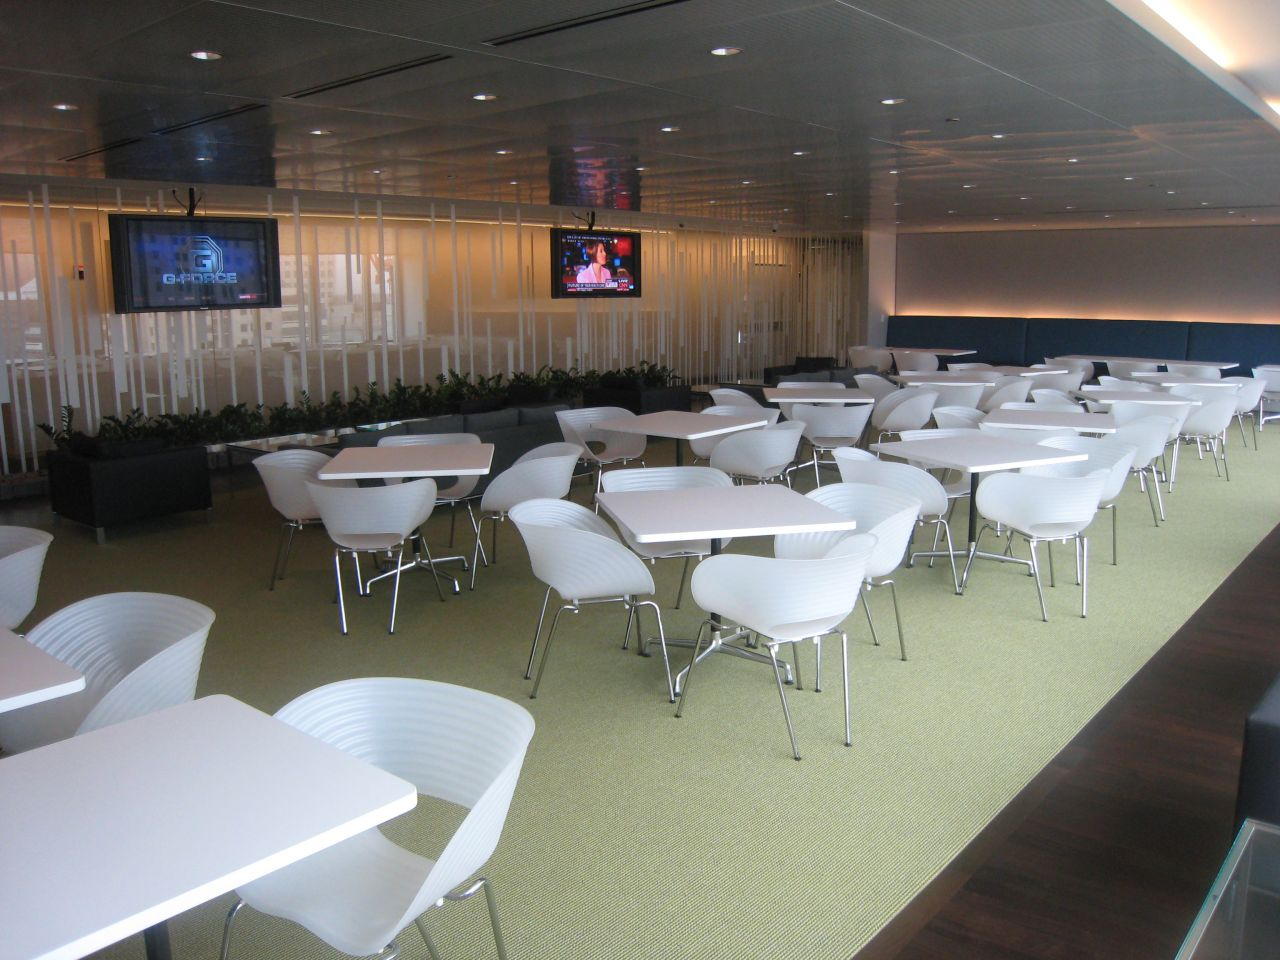 The 24th-floor employee cafeteria features two large-flat screen TVs and river views.